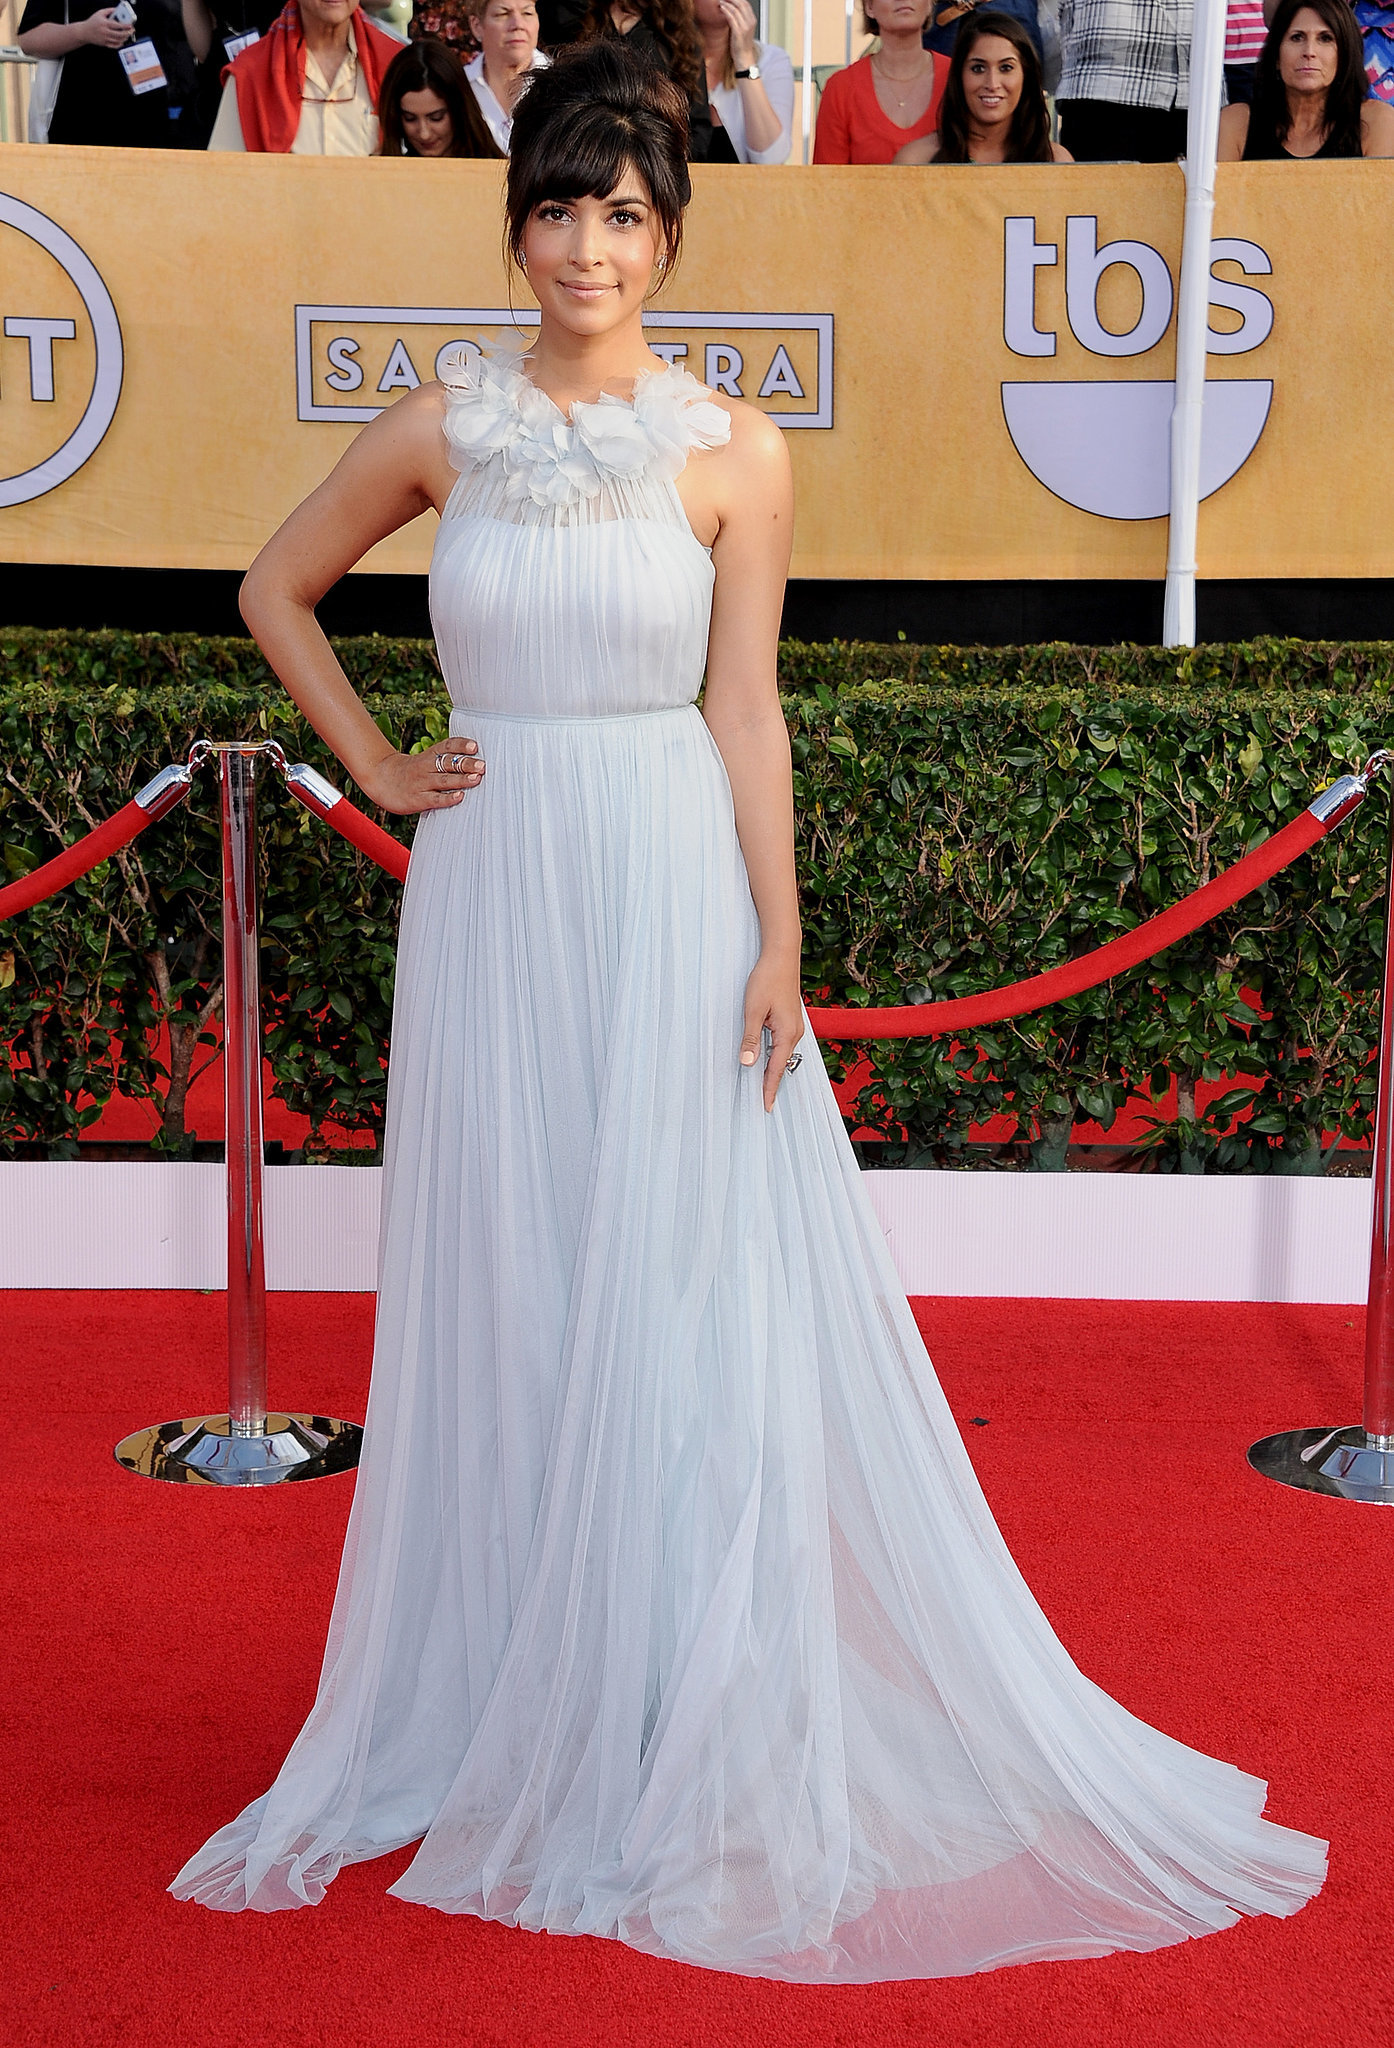 Hannah Simone at the SAG Awards 2014